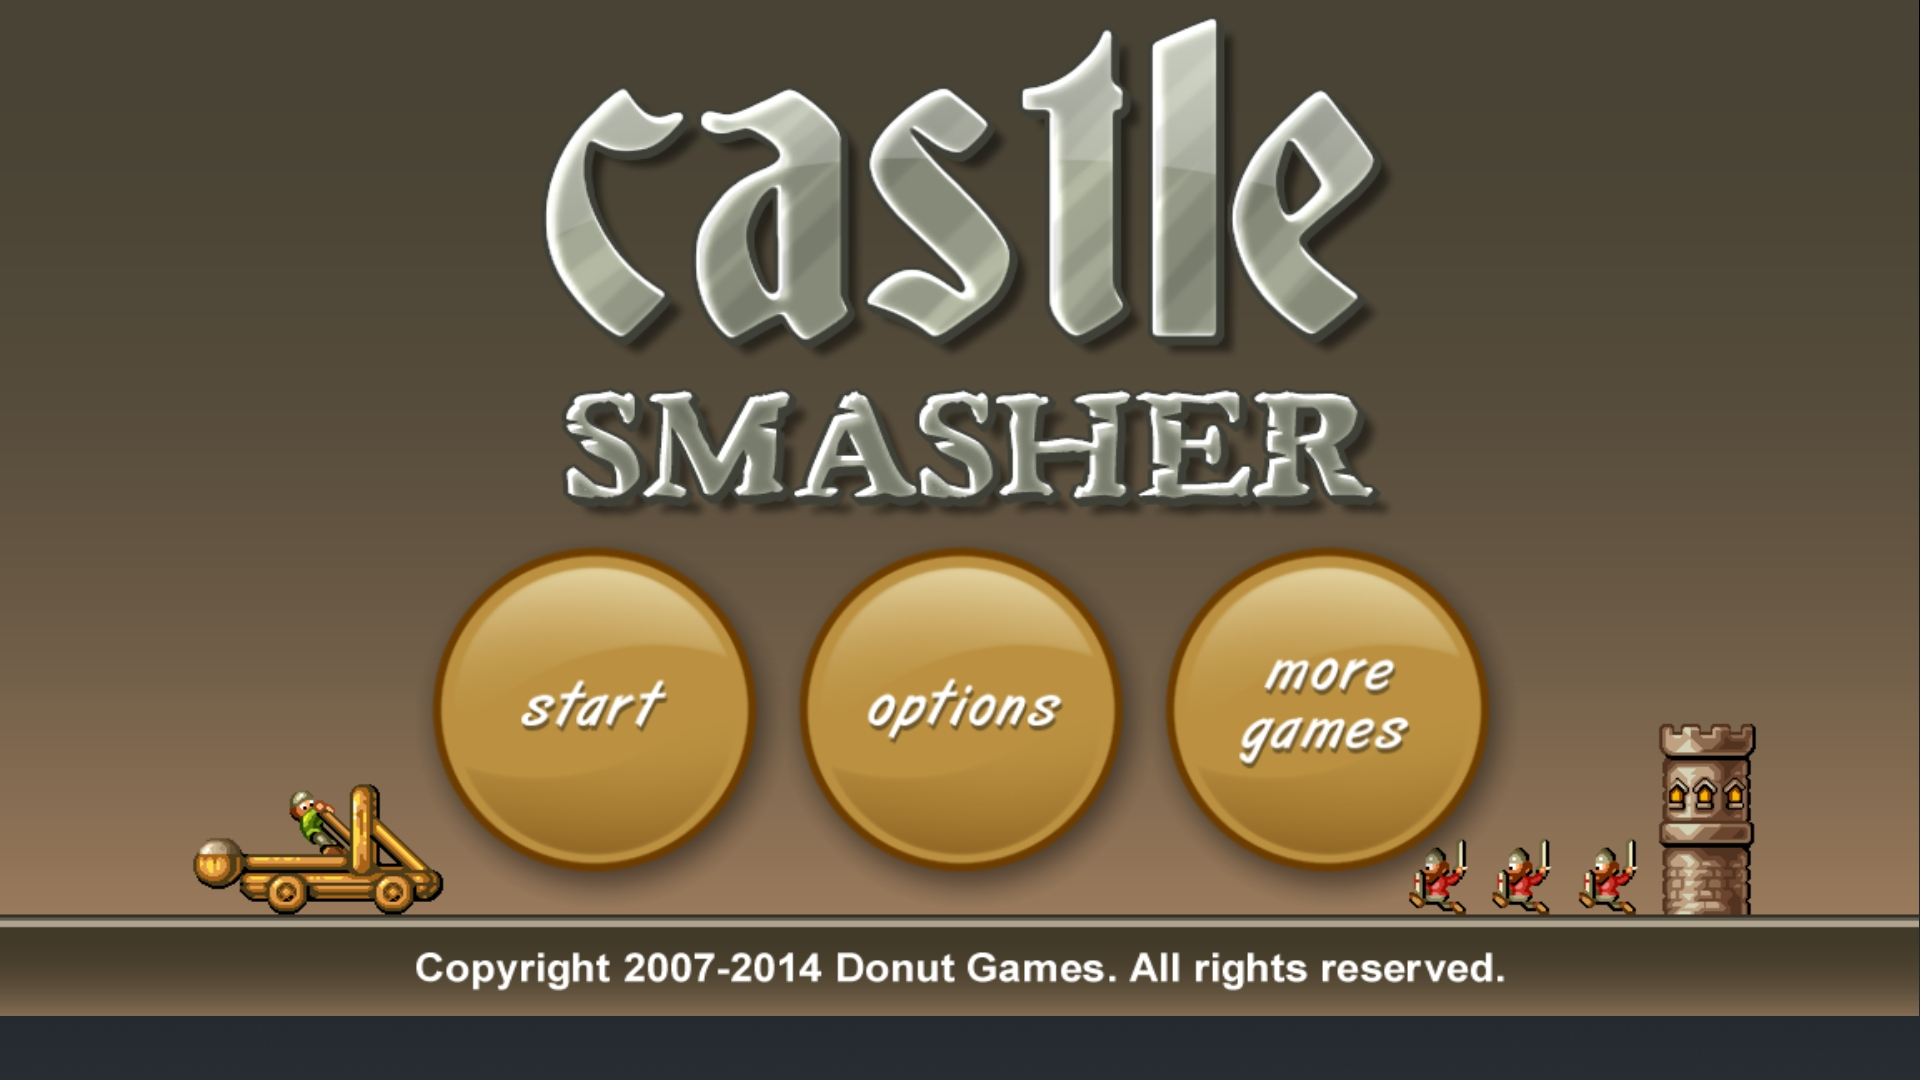 Bamse: Castle Smasher: Challenges: 32 Target Thrill (Android) 102 points on 2019-09-10 17:44:11